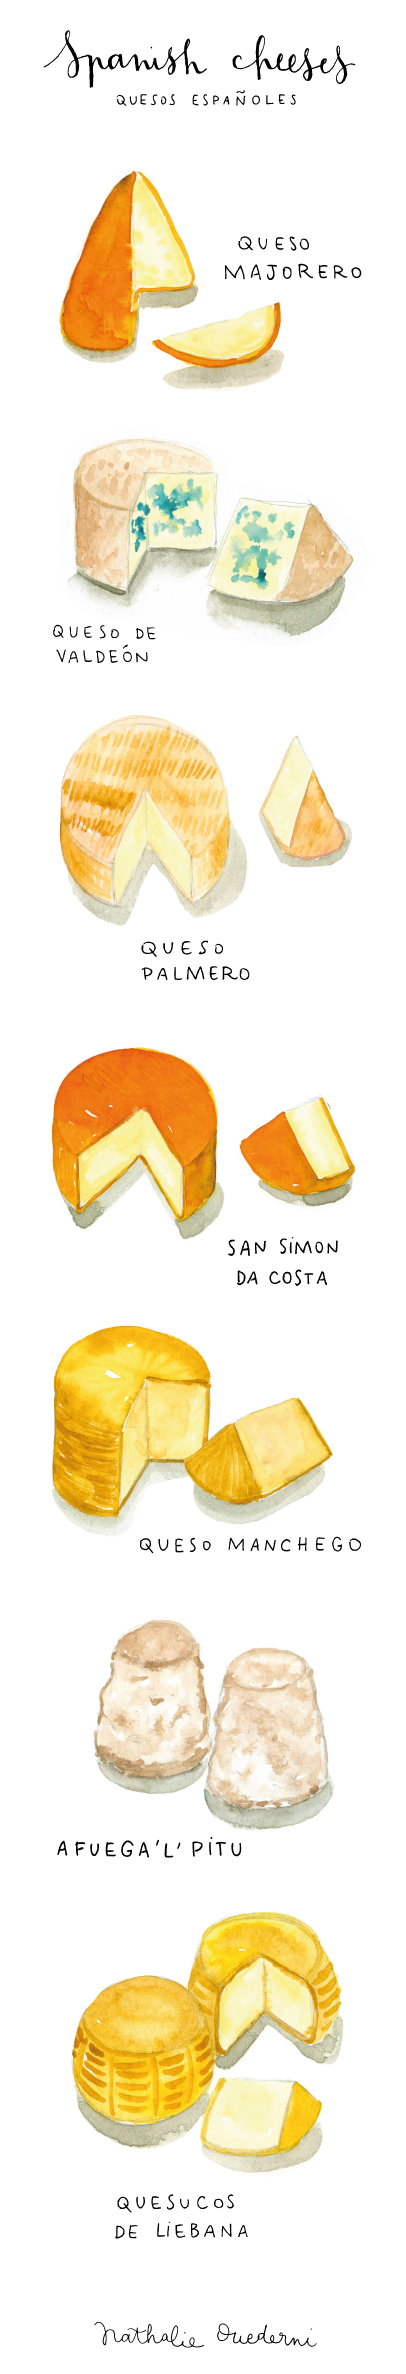 spanish-cheeses-watercolor-food-illustration-long.jpg